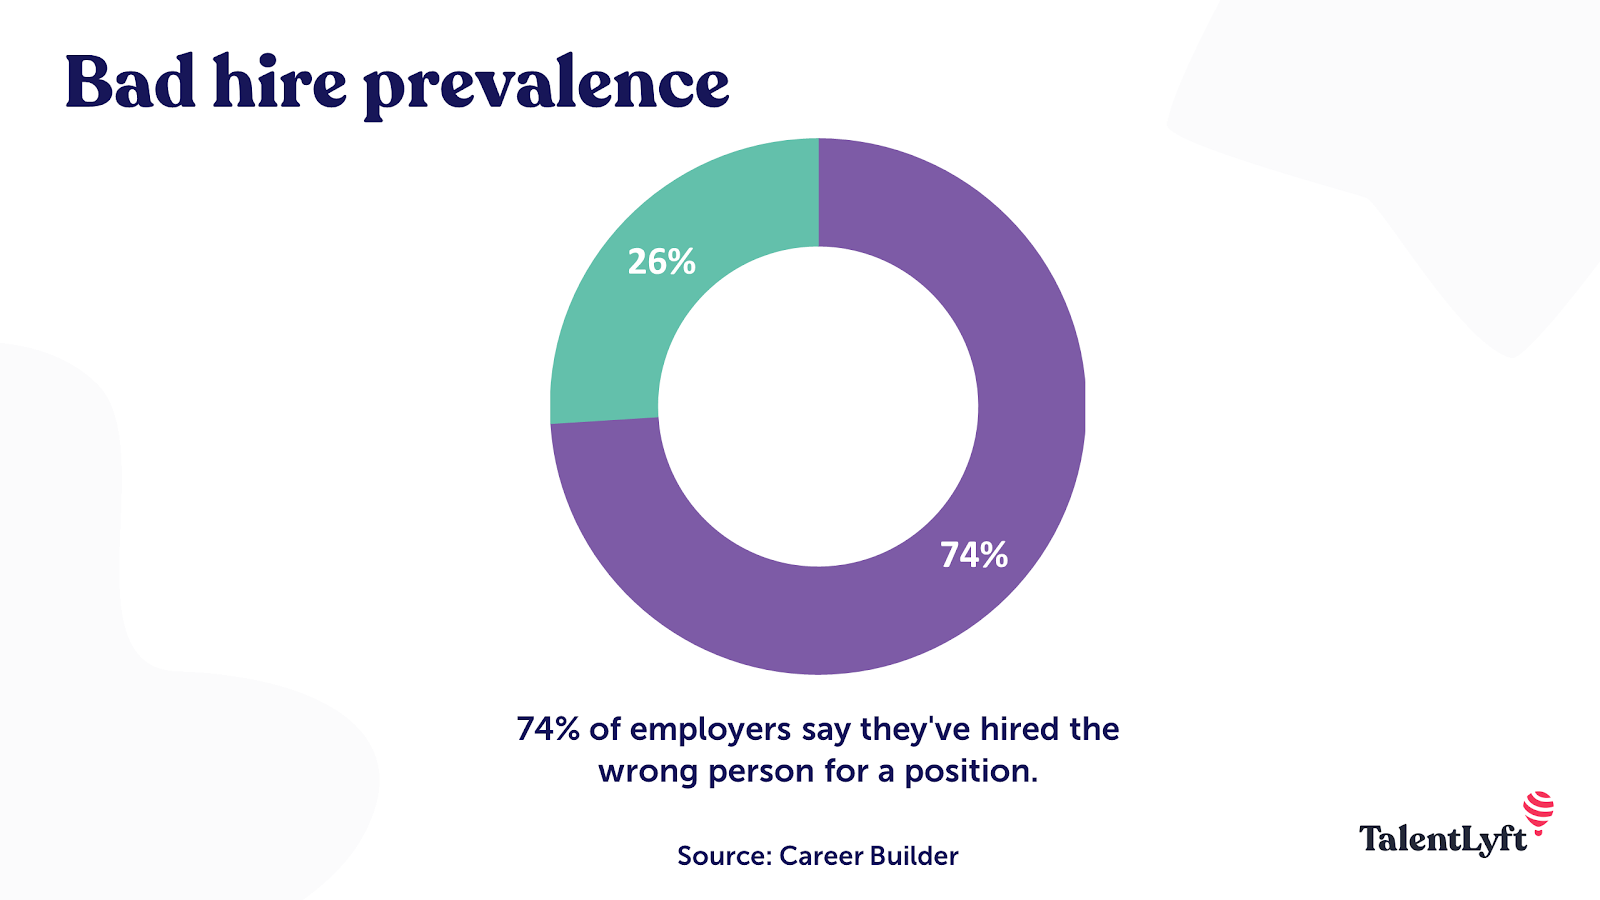 Bad hire prevalence